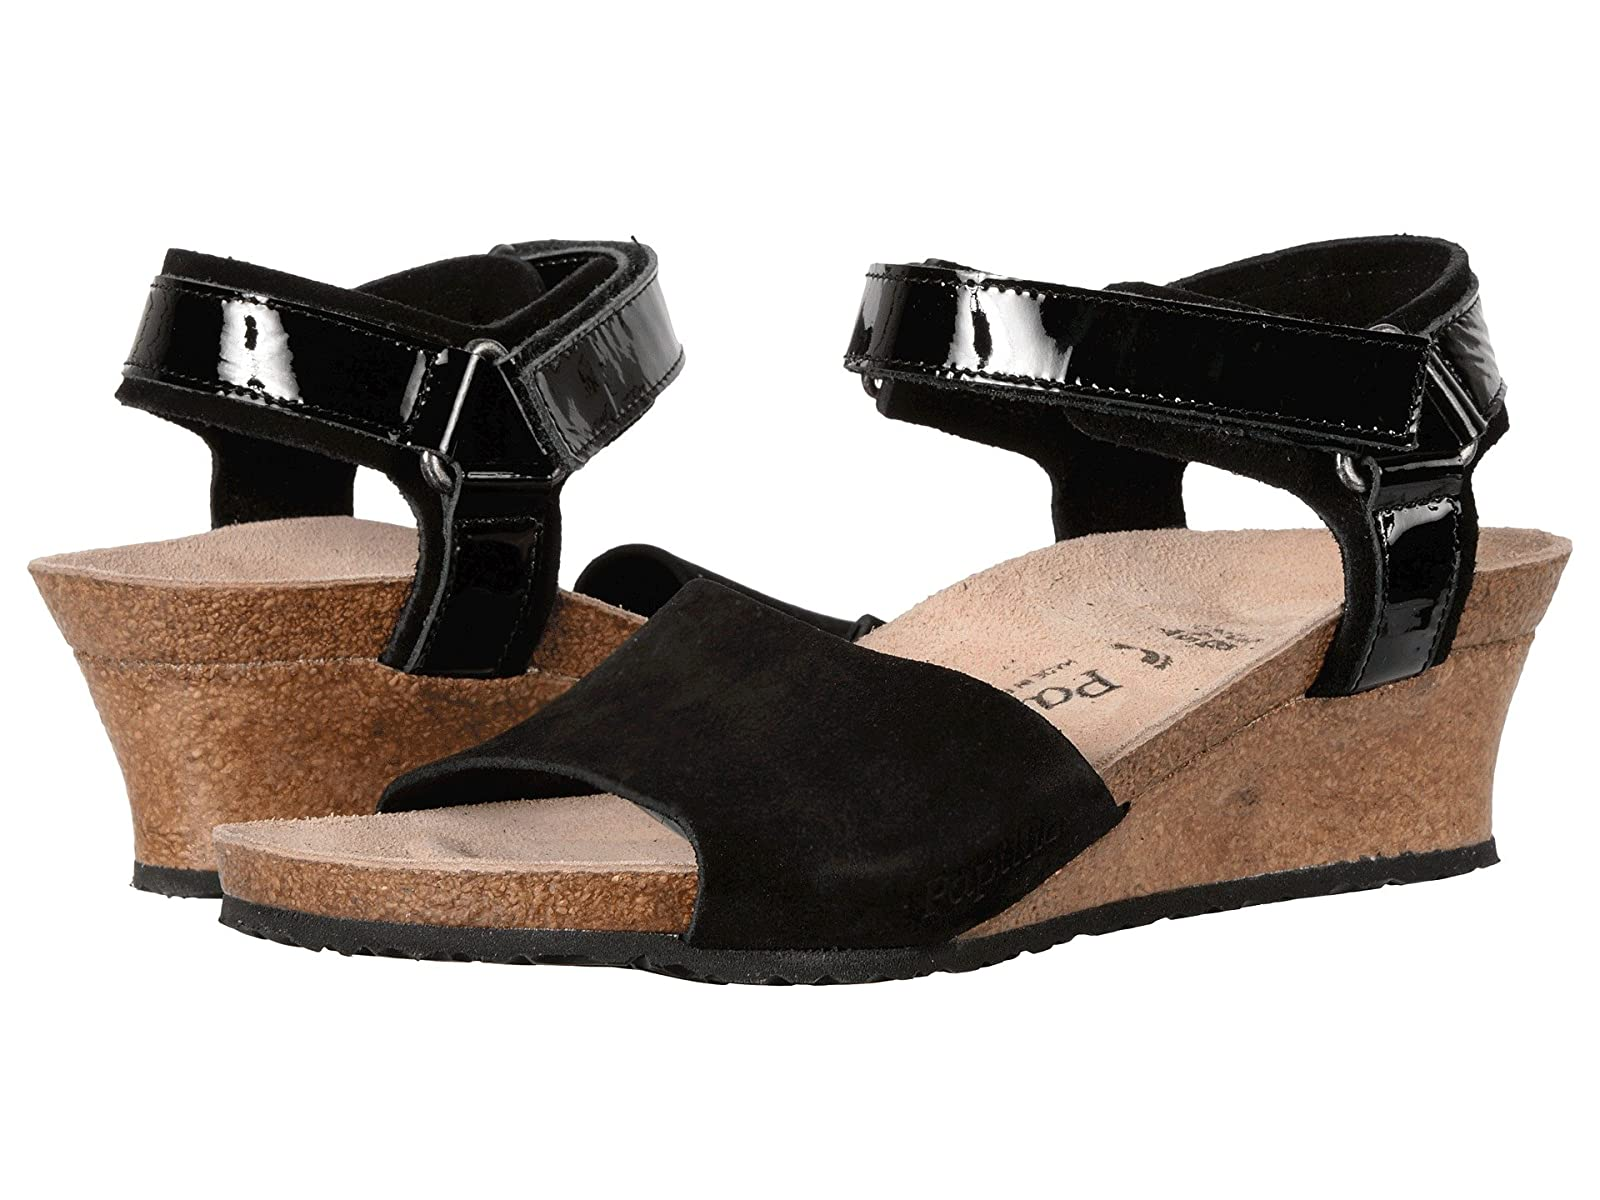 Birkenstock EveCheap and distinctive eye-catching shoes